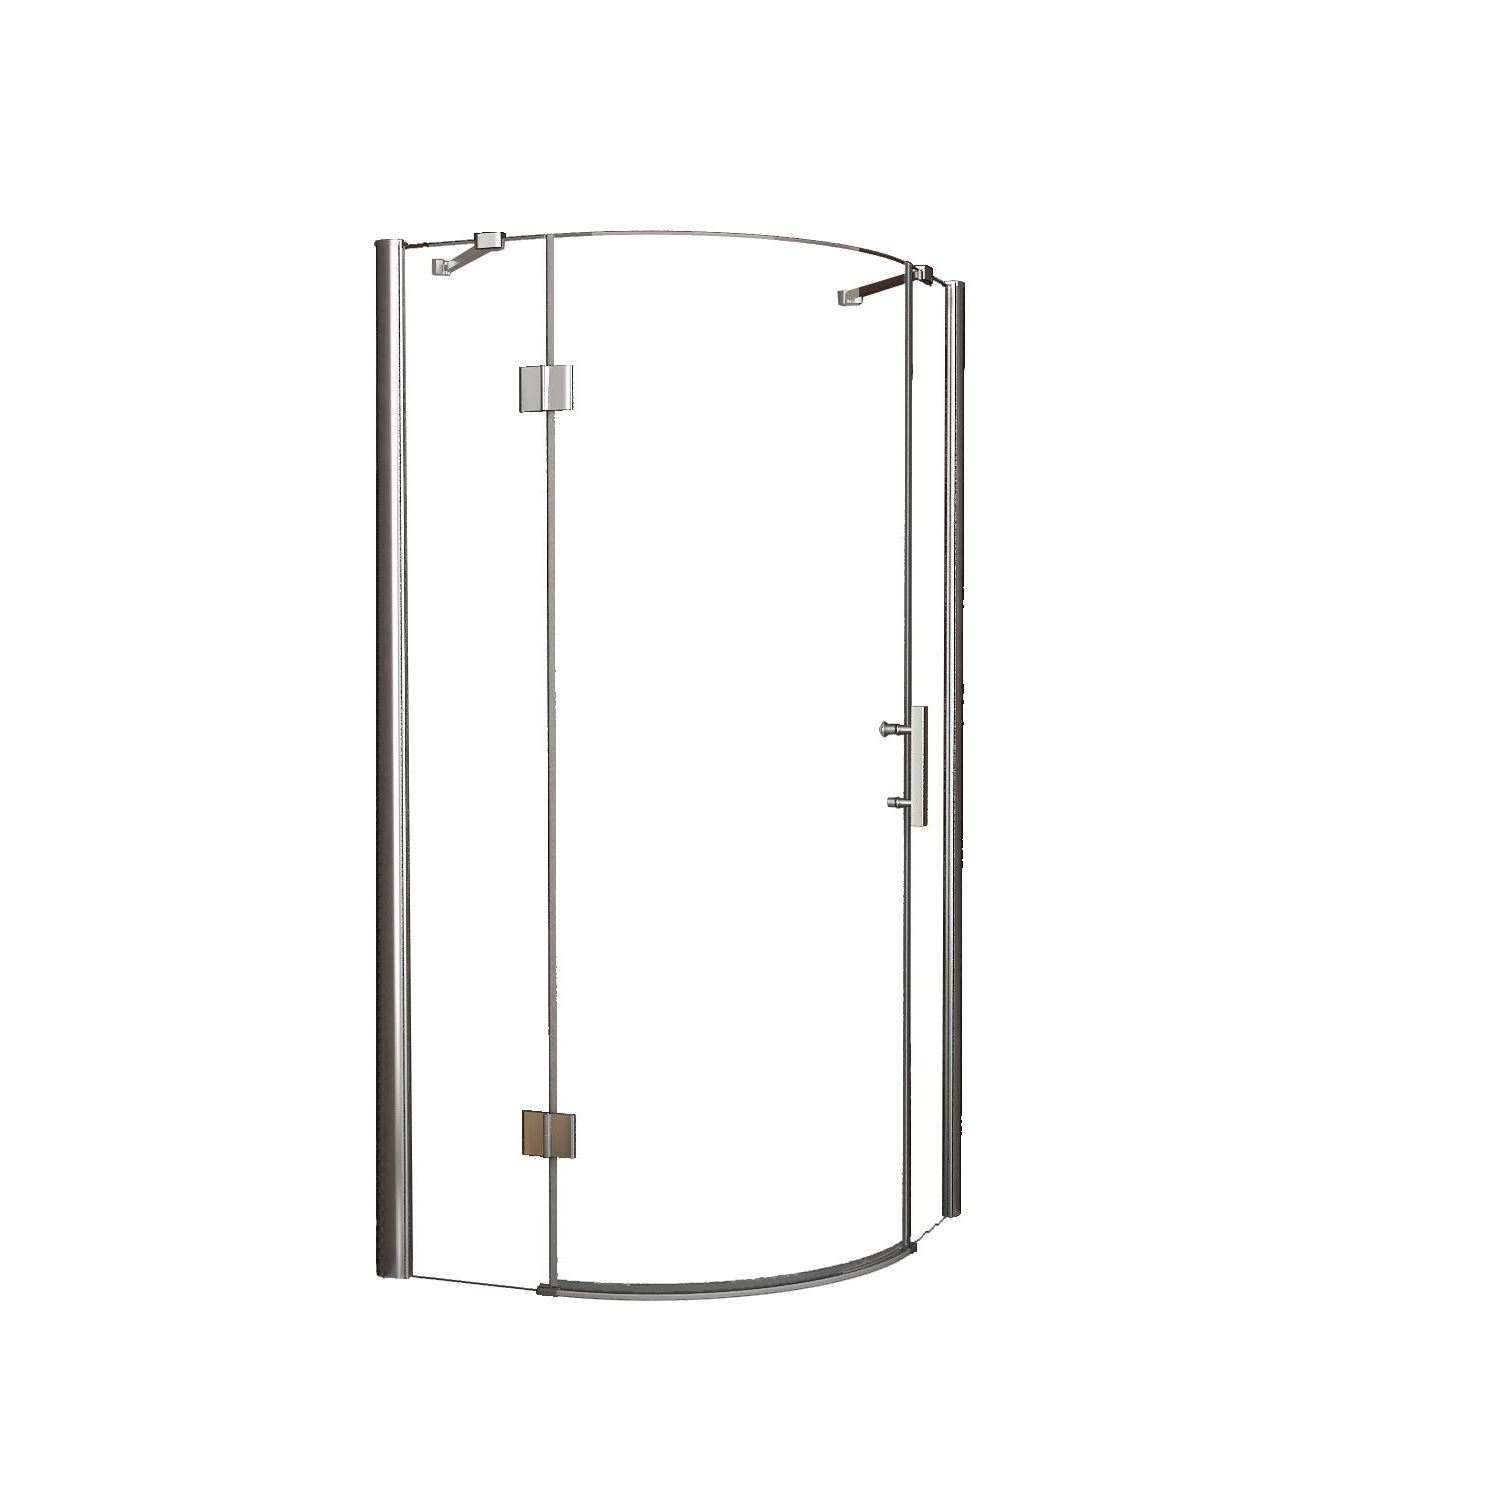 Douche 66801 BWS Kwartronde Douchecabine 90x90cm 1 deur Links 8mm NANO coating